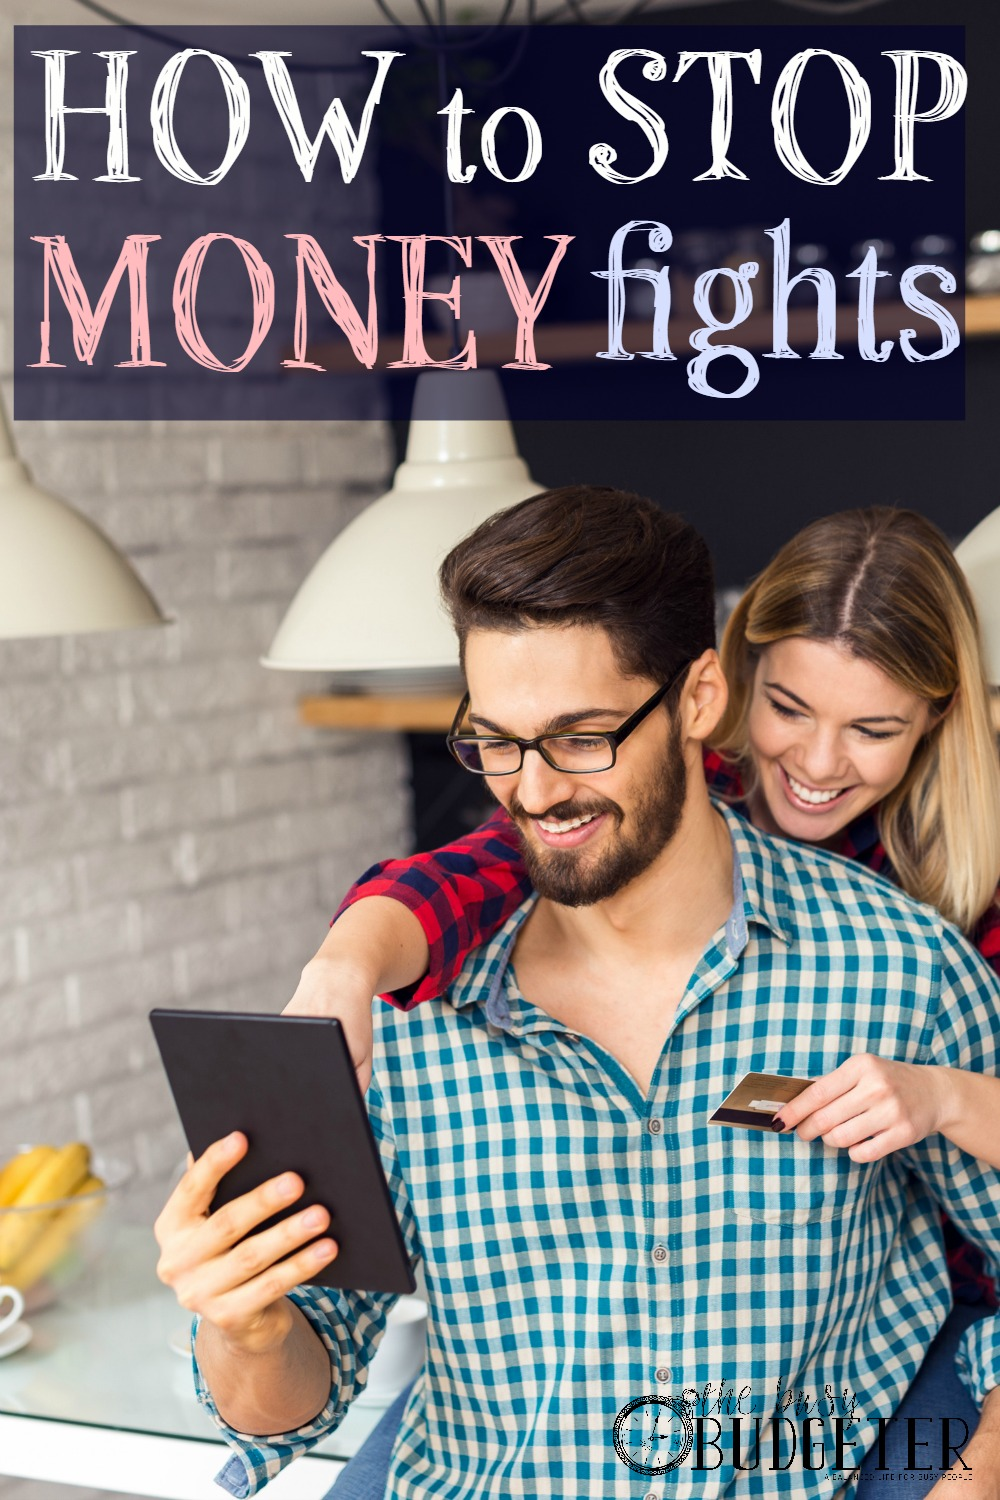 How To Stop Money Fights: Totally works! My husband and I used to fight all the time about who was the one overspending and doing stupid stuff with our money. Once we followed these steps we both had to admit we could do better. Now we talk about our finances together and we hardly ever fight about it anymore!